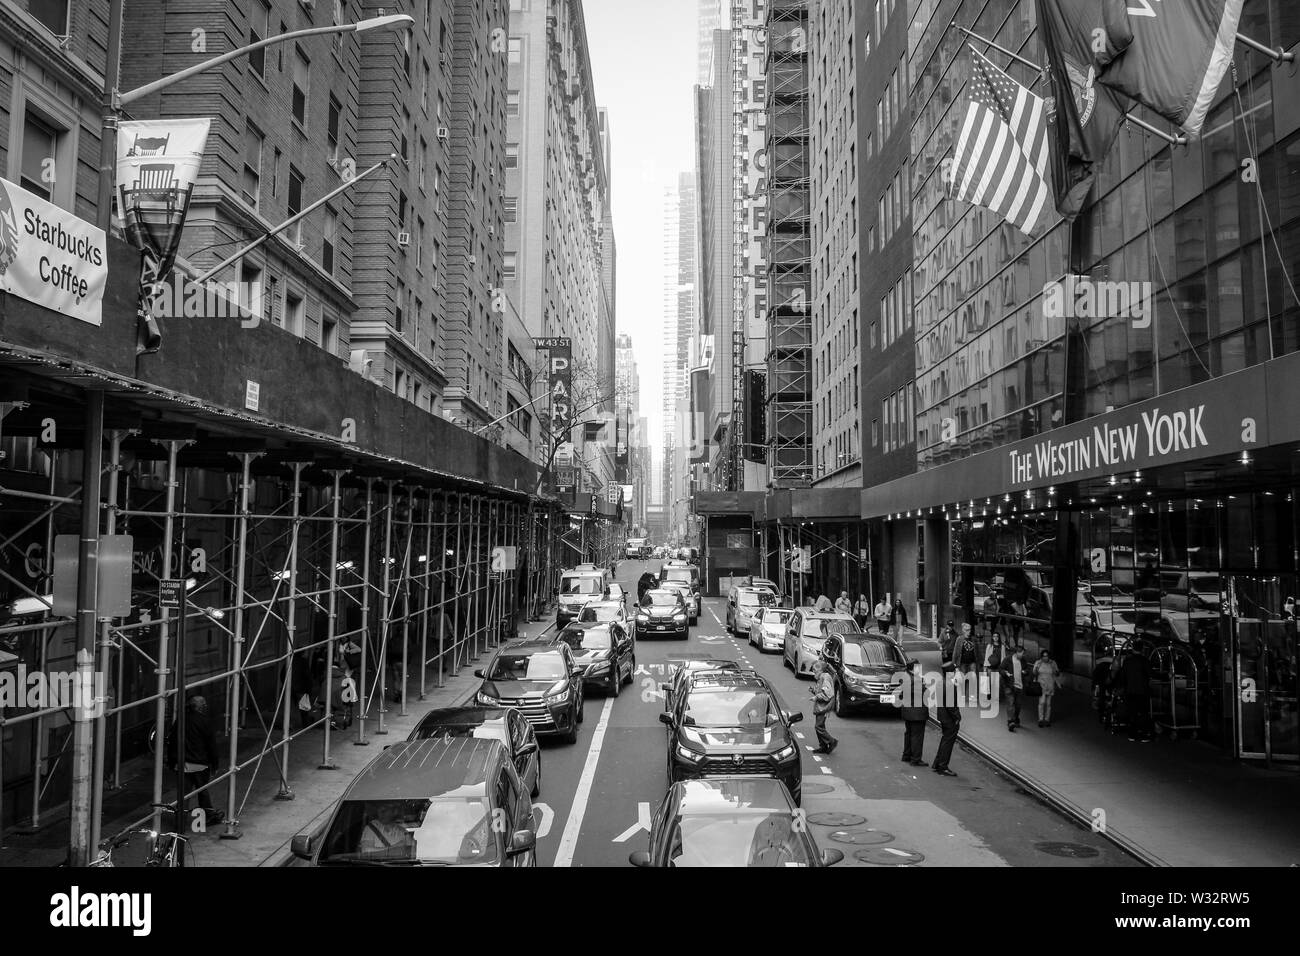 Busy Day in New York - Stock Image